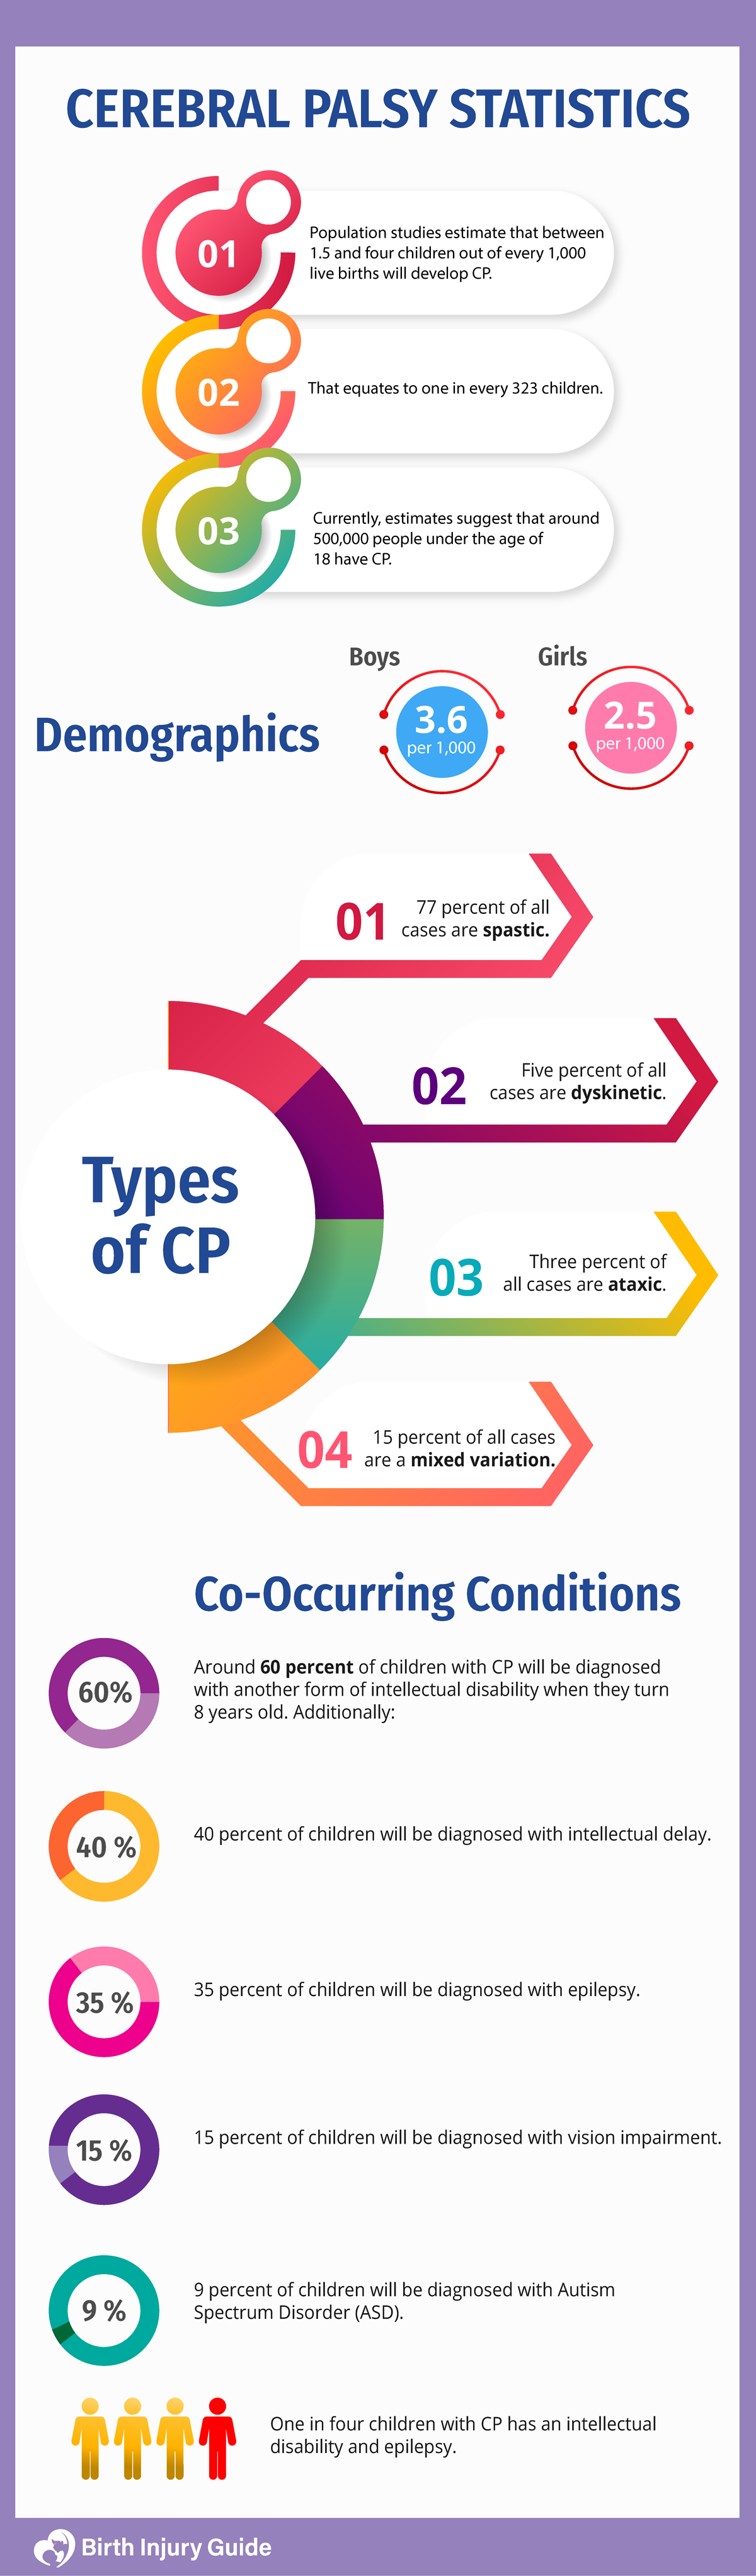 cerebral palsy worldwide statistics, boys and girls; types of cp and conditions.